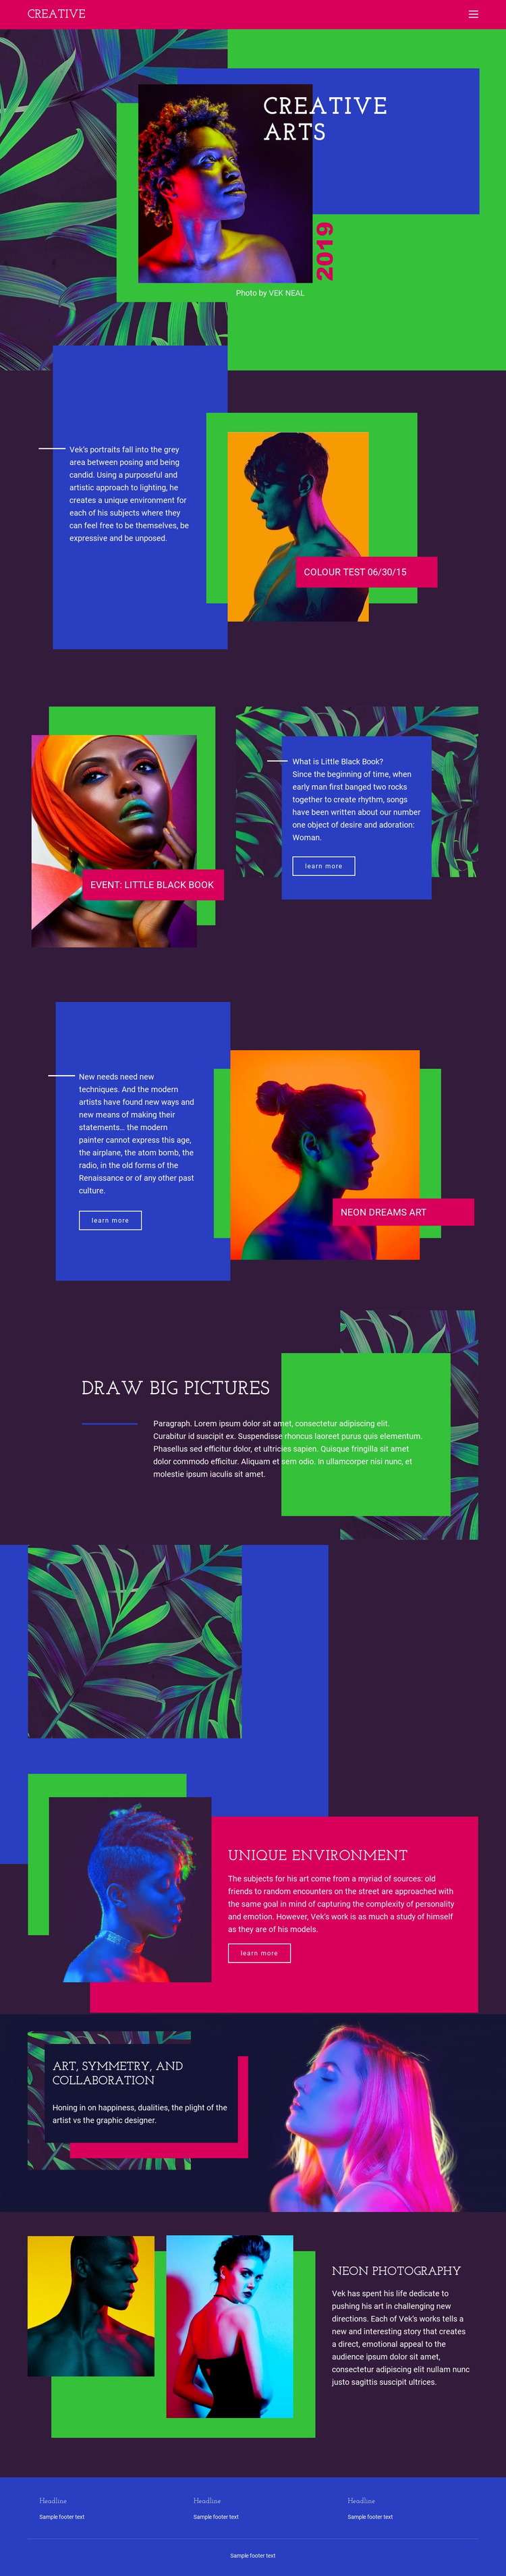 Creative Art Ideas One Page Template